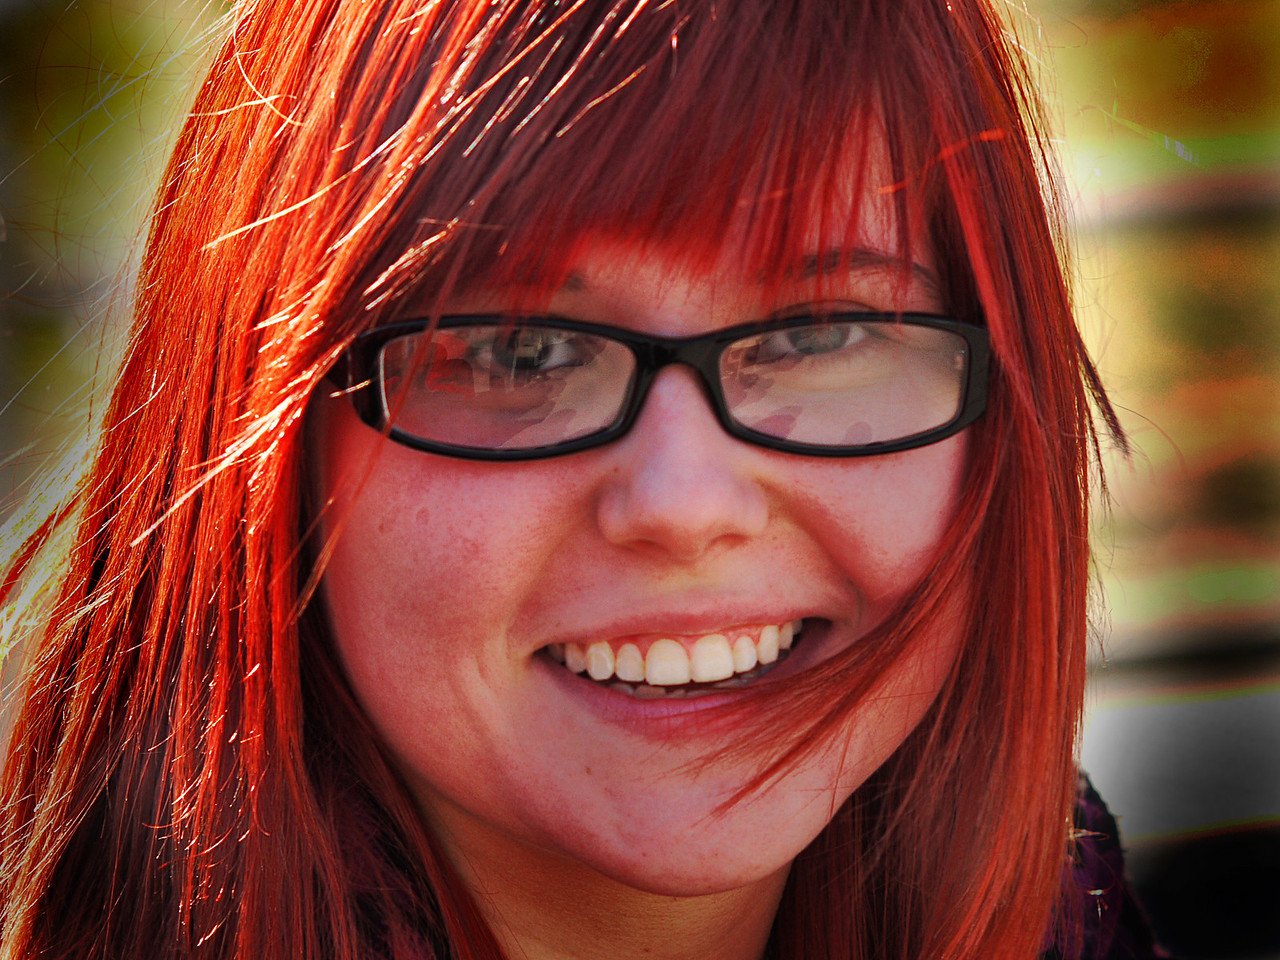 REDHEAD- WASHINGTON SQ. PARK, N.Y.C.- G1 WITH 135MM (270MM EFL) NIKKOR-Q f2.8.